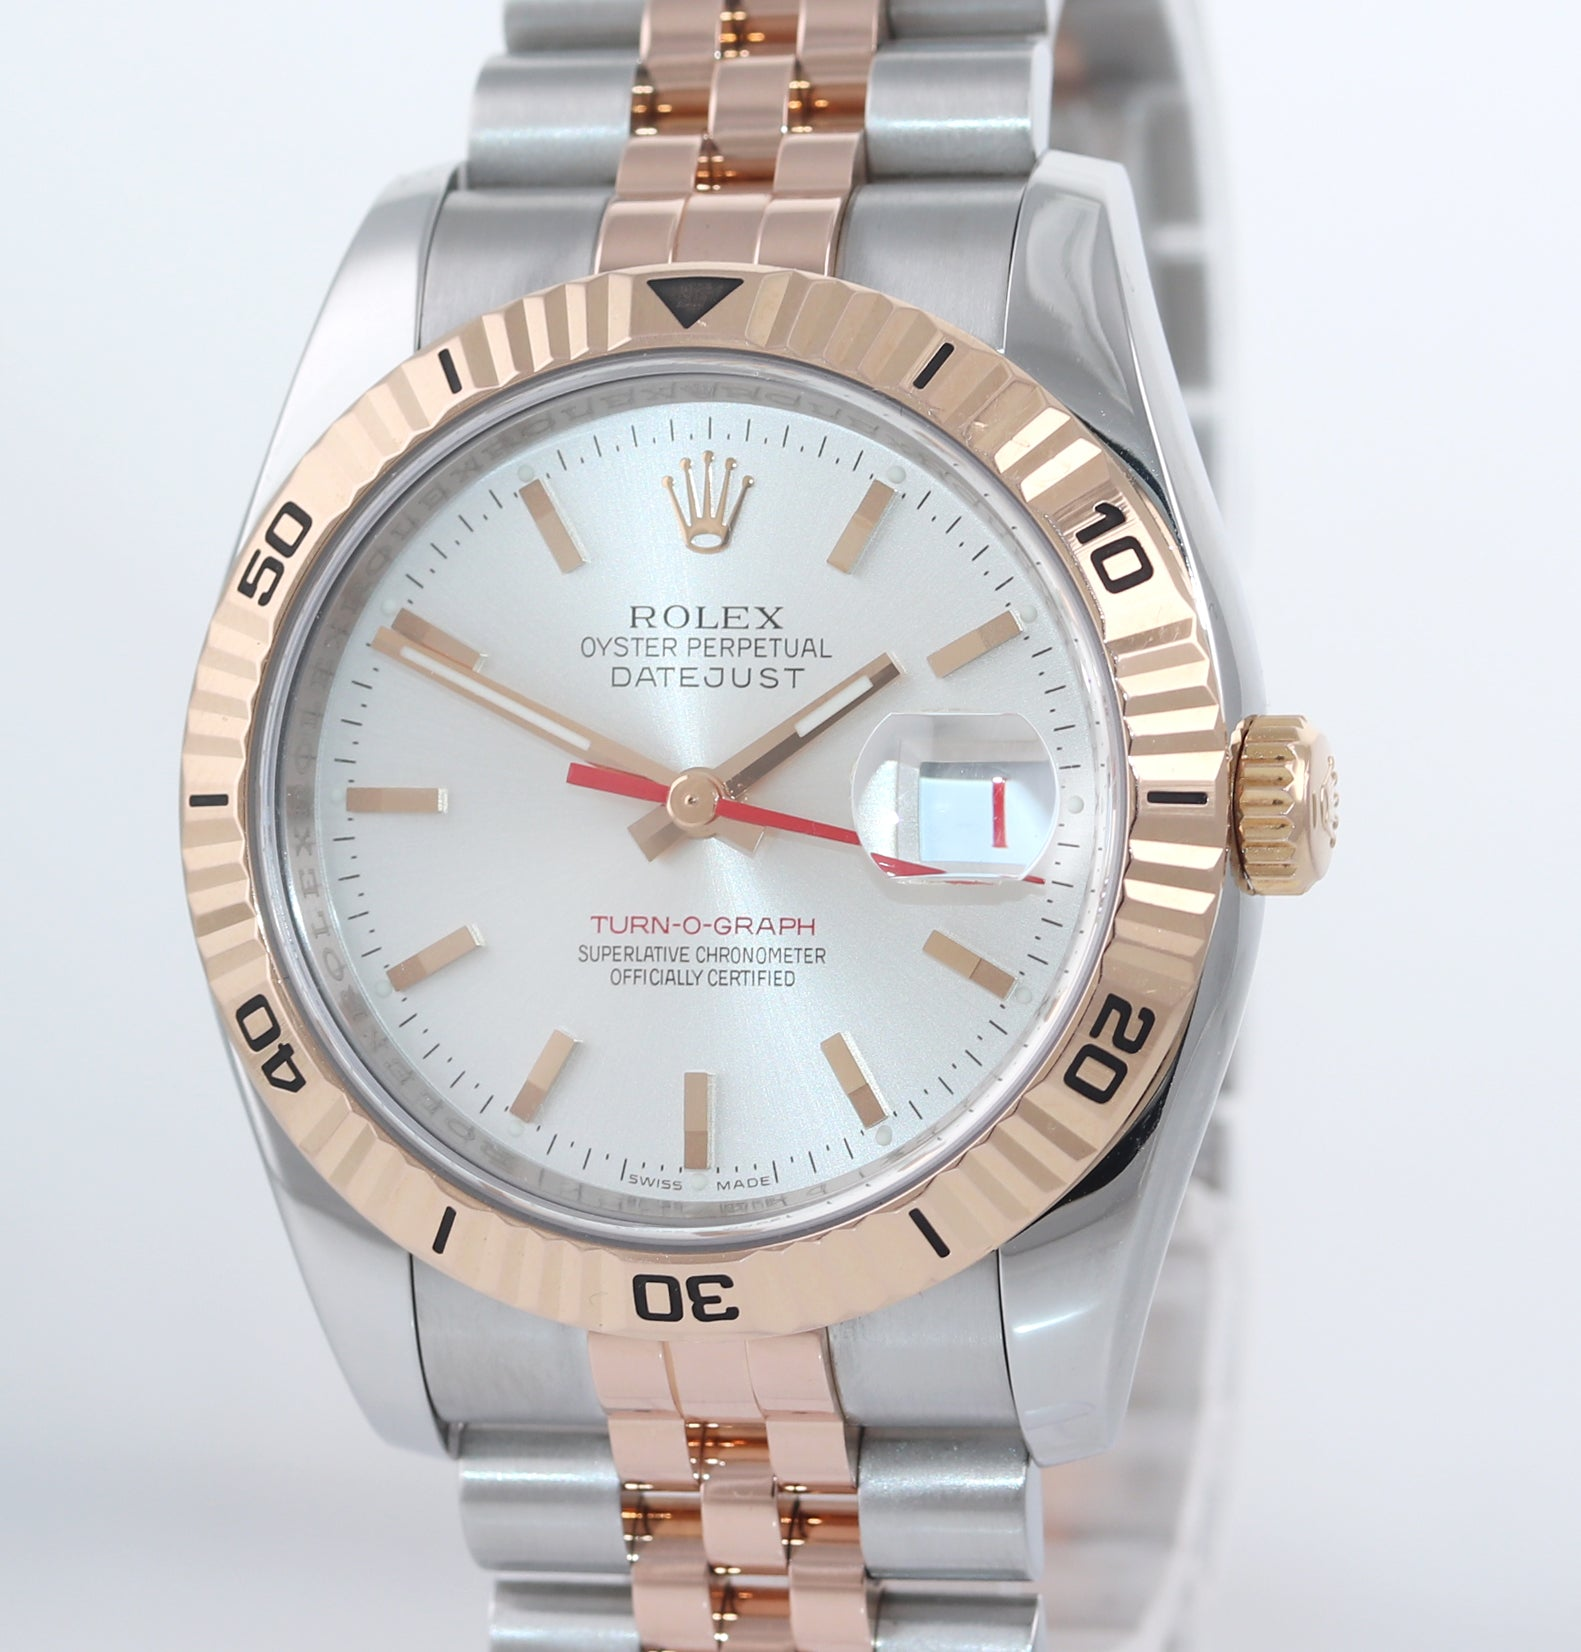 Rolex DateJust Turn-O-Graph 116261 Rose Gold Two Tone Silver 36mm Jubilee Watch